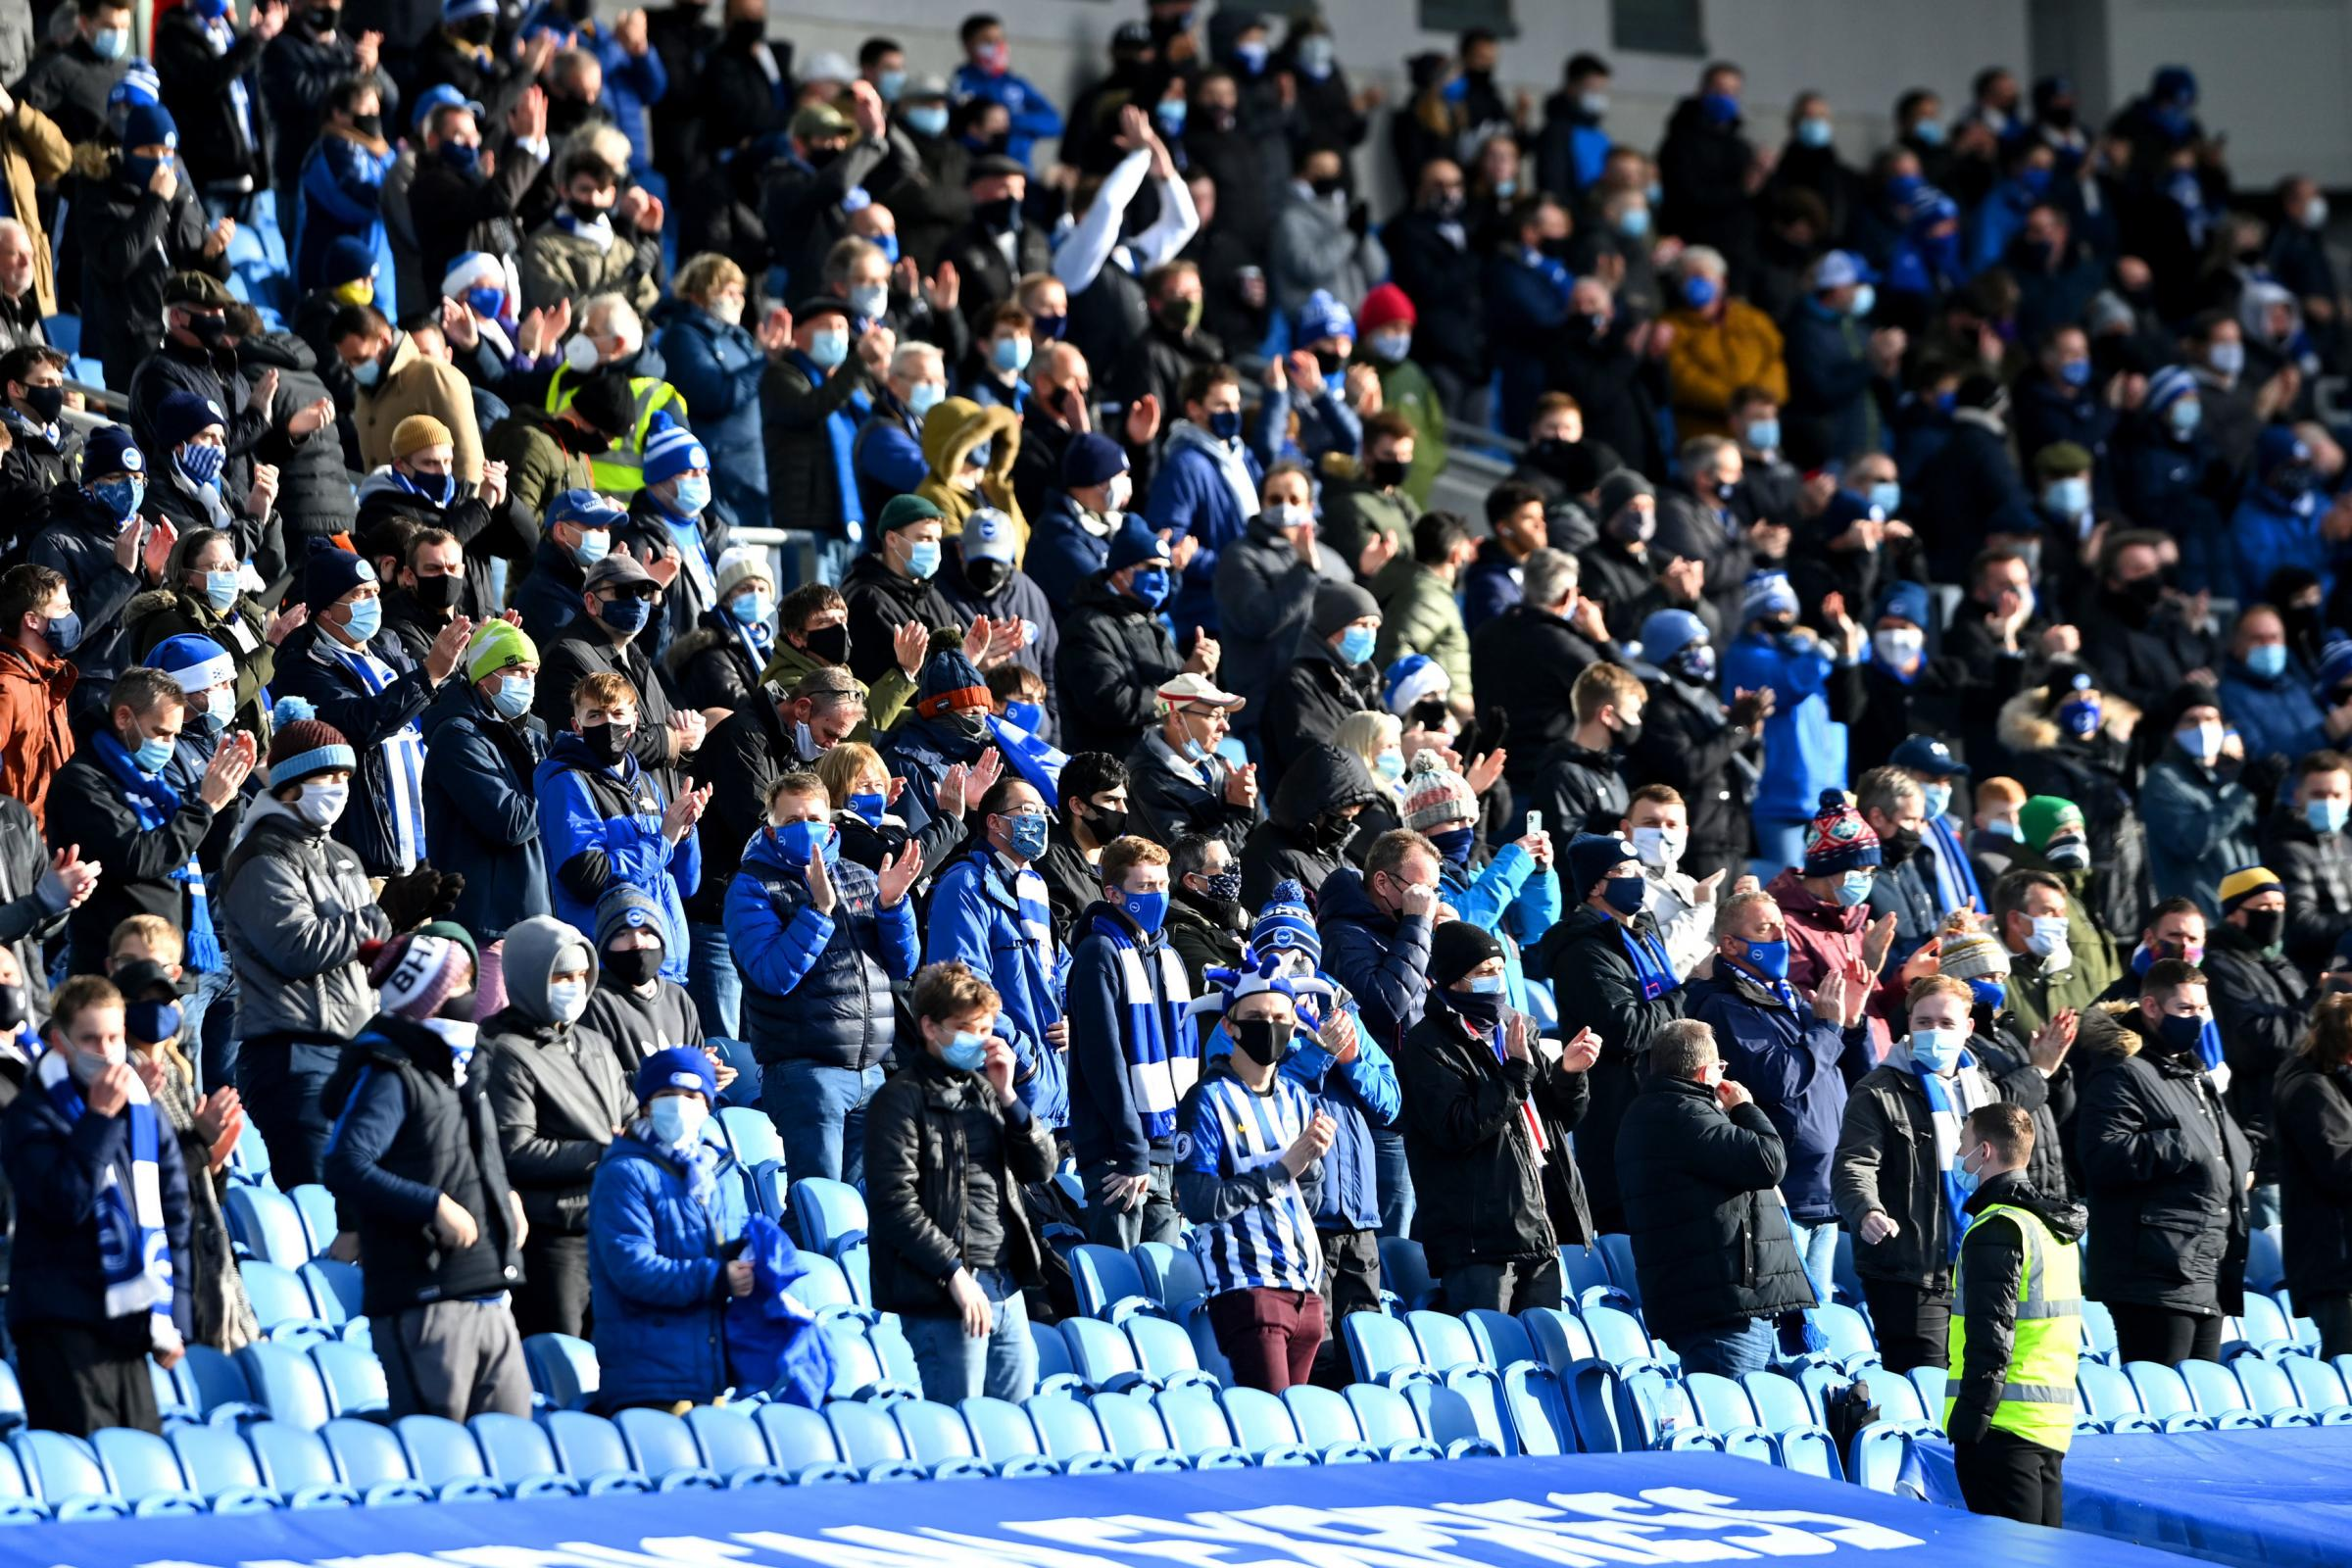 Paul Barber responds to worries over buying tickets to Amex